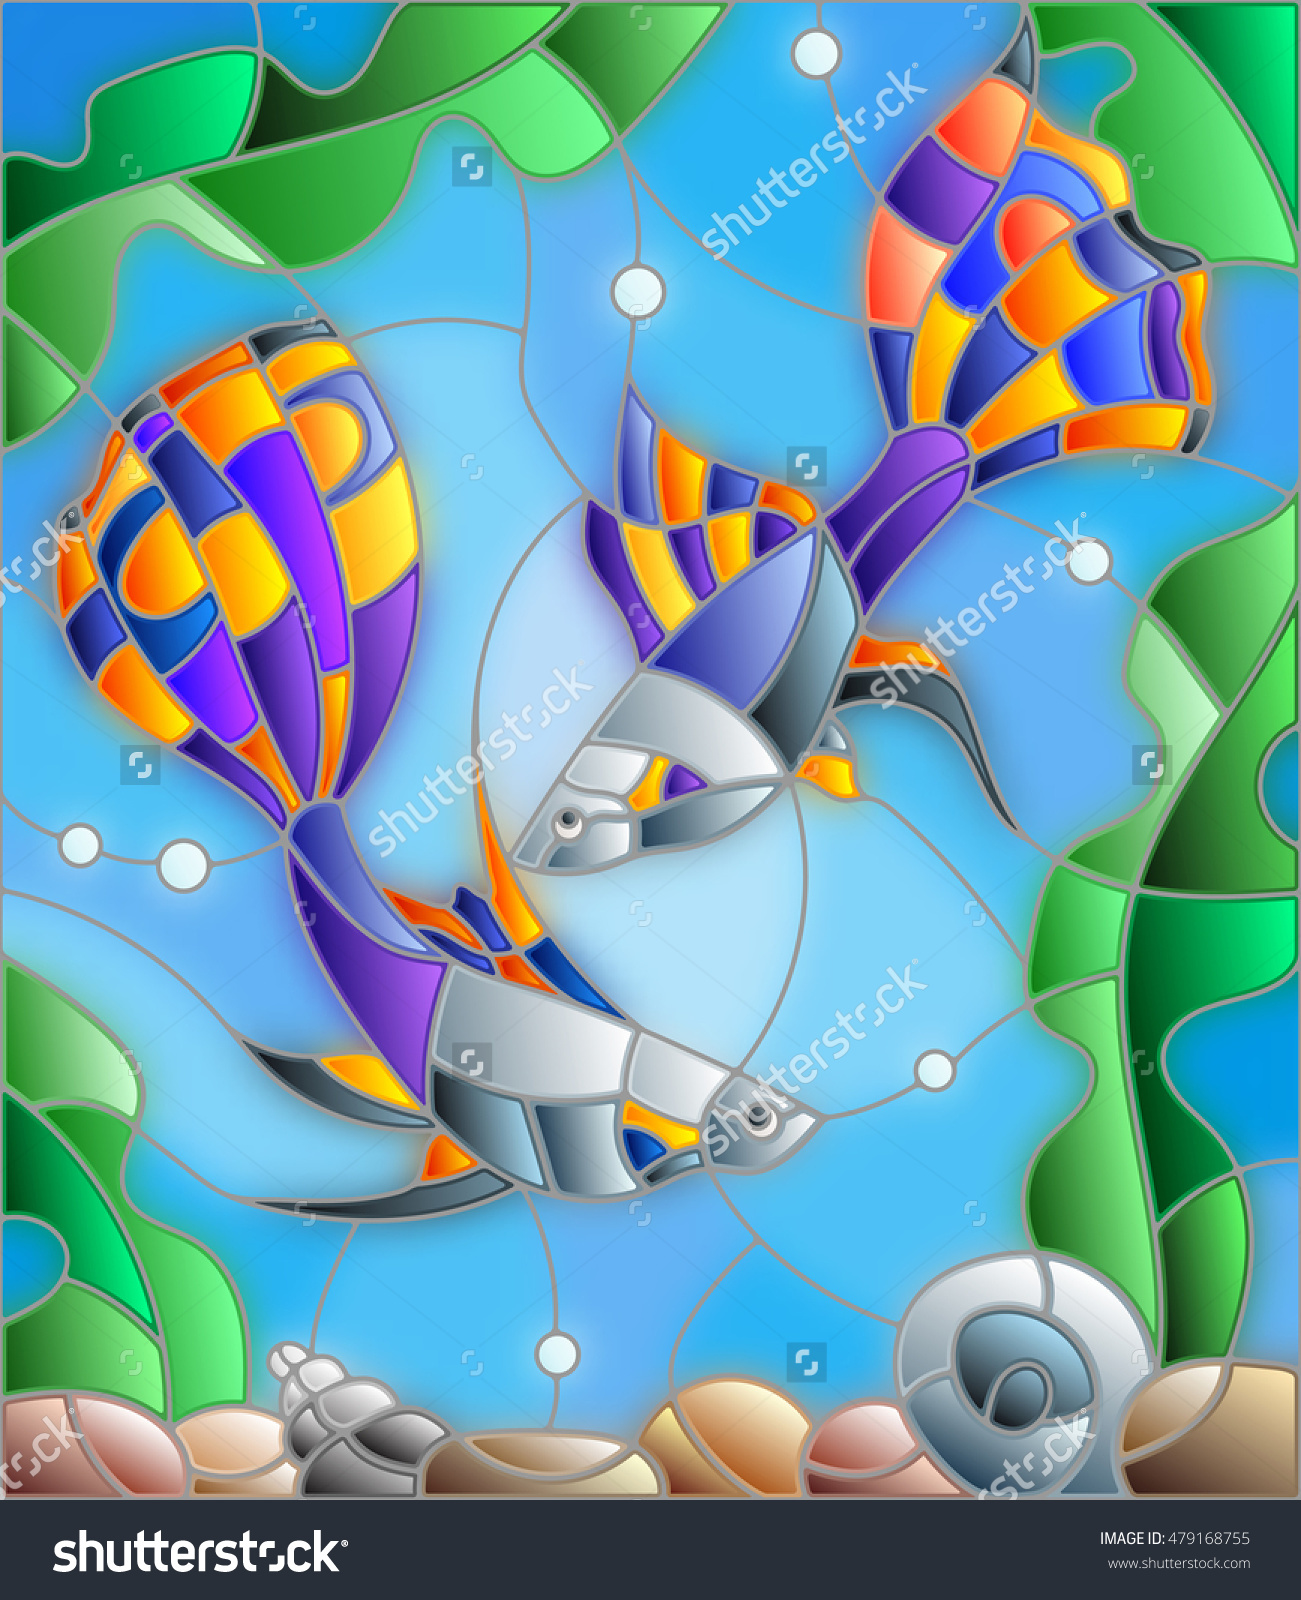 Illustration In Stained Glass Style With A Pair Of Guppies On The.